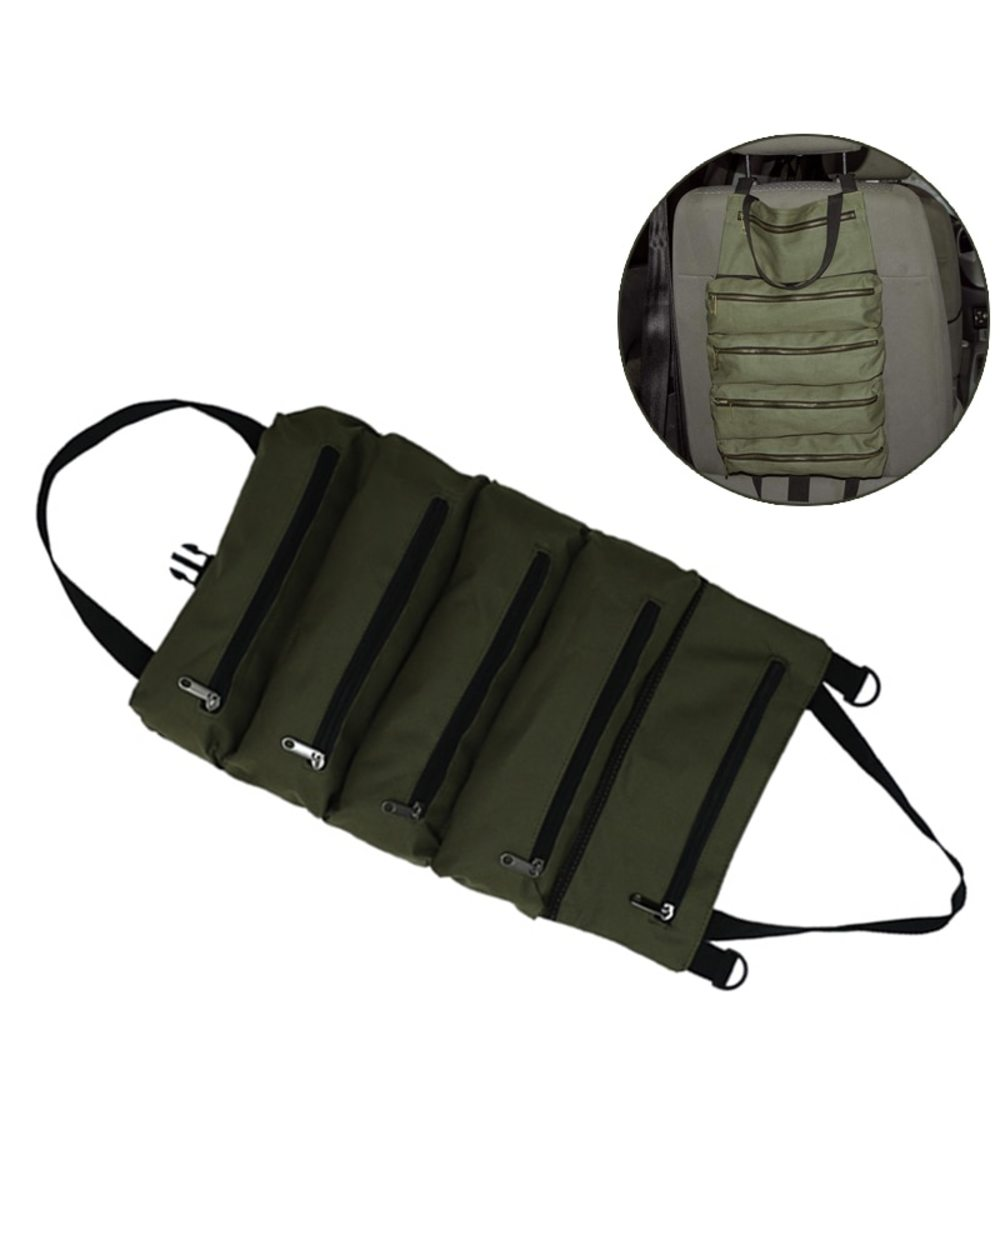 Multi-Purpose Zipper Carrier Roll Up Tote: Best Tool Pouch for Electricians  template